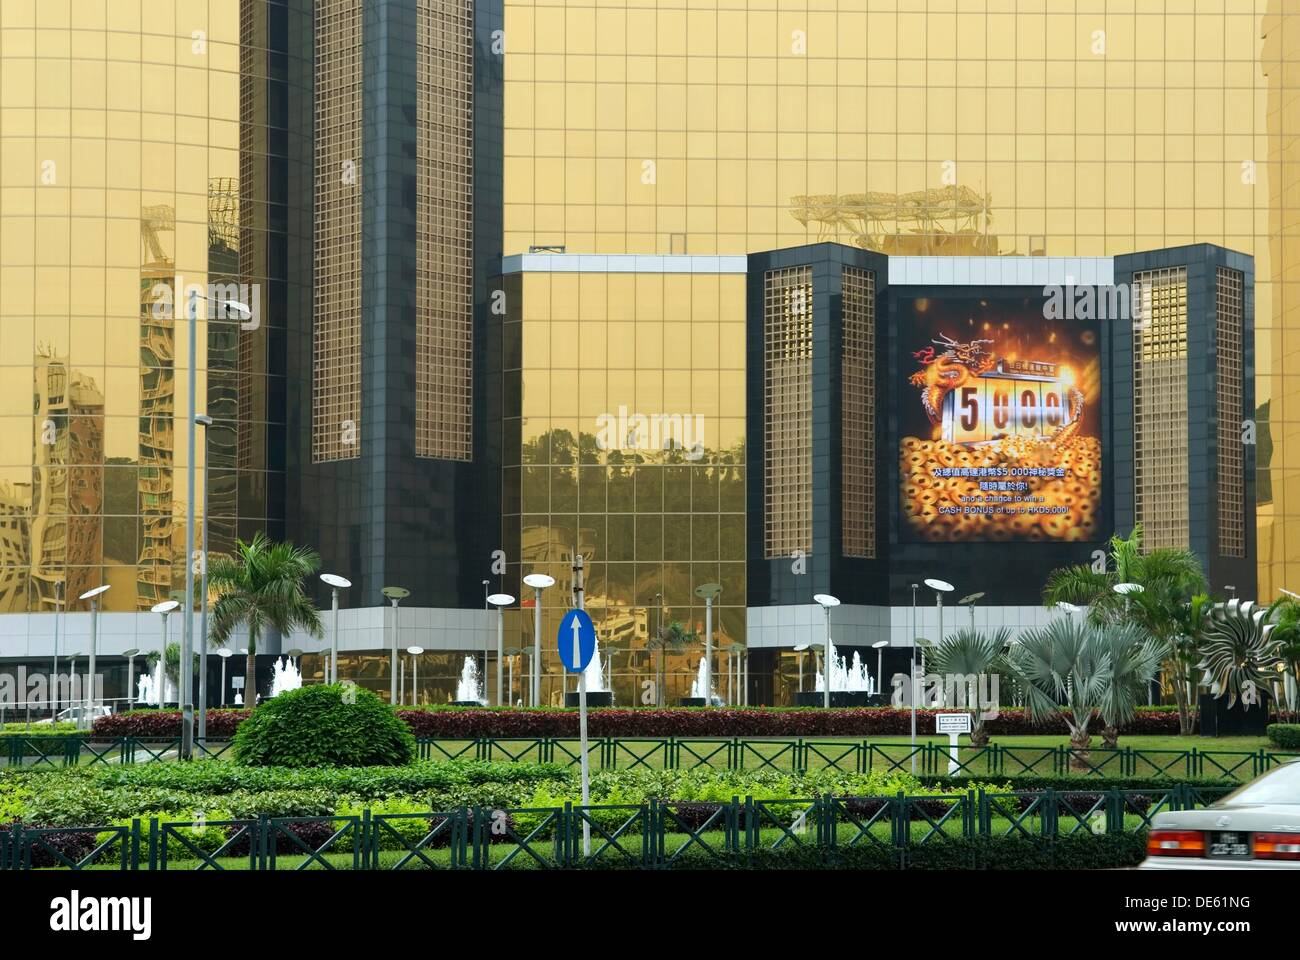 the Sands casino,Macau,Special Administrative Region,China,Asia - Stock Image